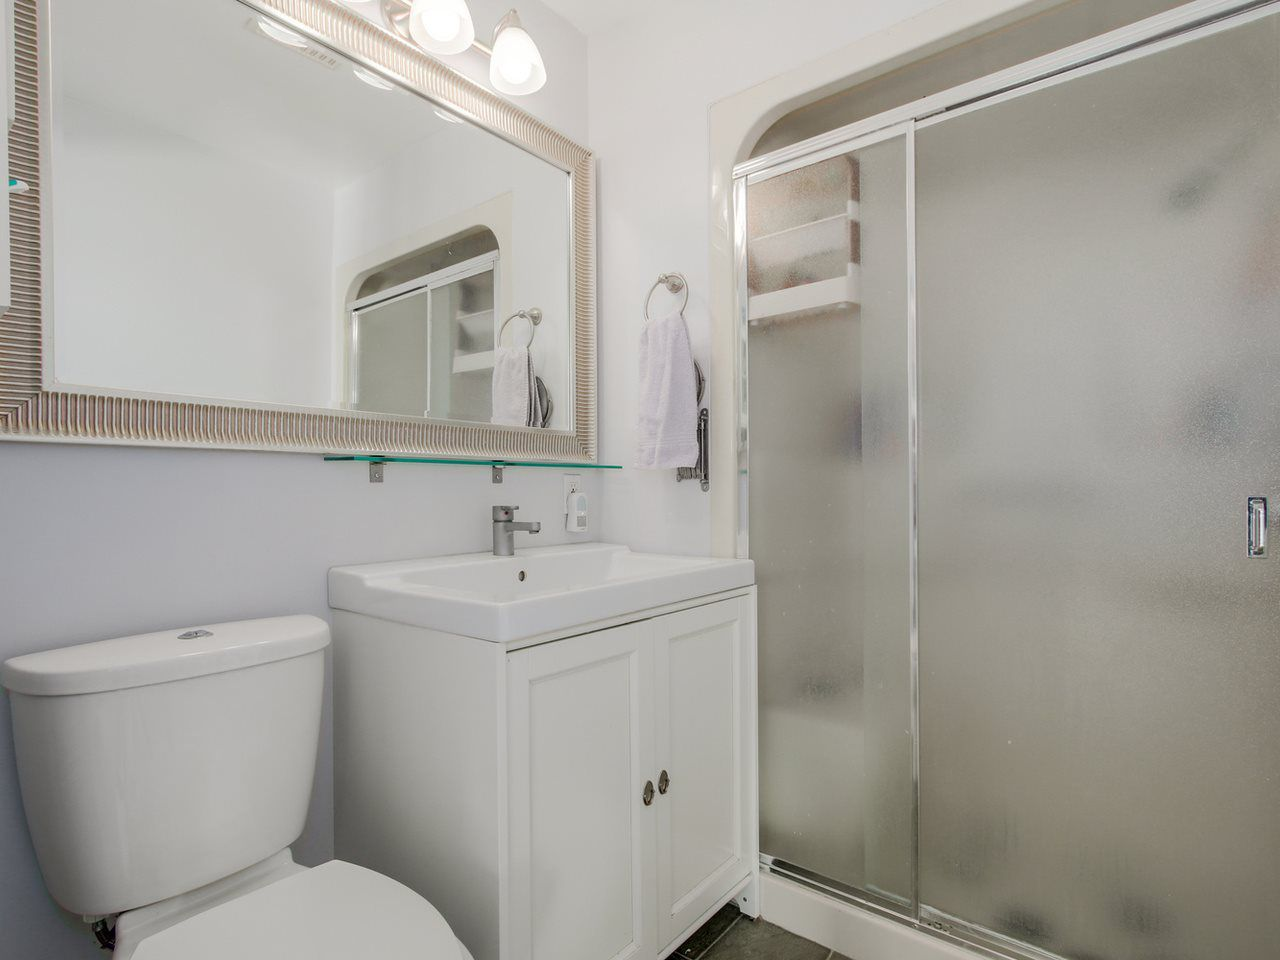 Photo 17: Photos: 449 E 5TH Street in North Vancouver: Lower Lonsdale House for sale : MLS®# R2056647